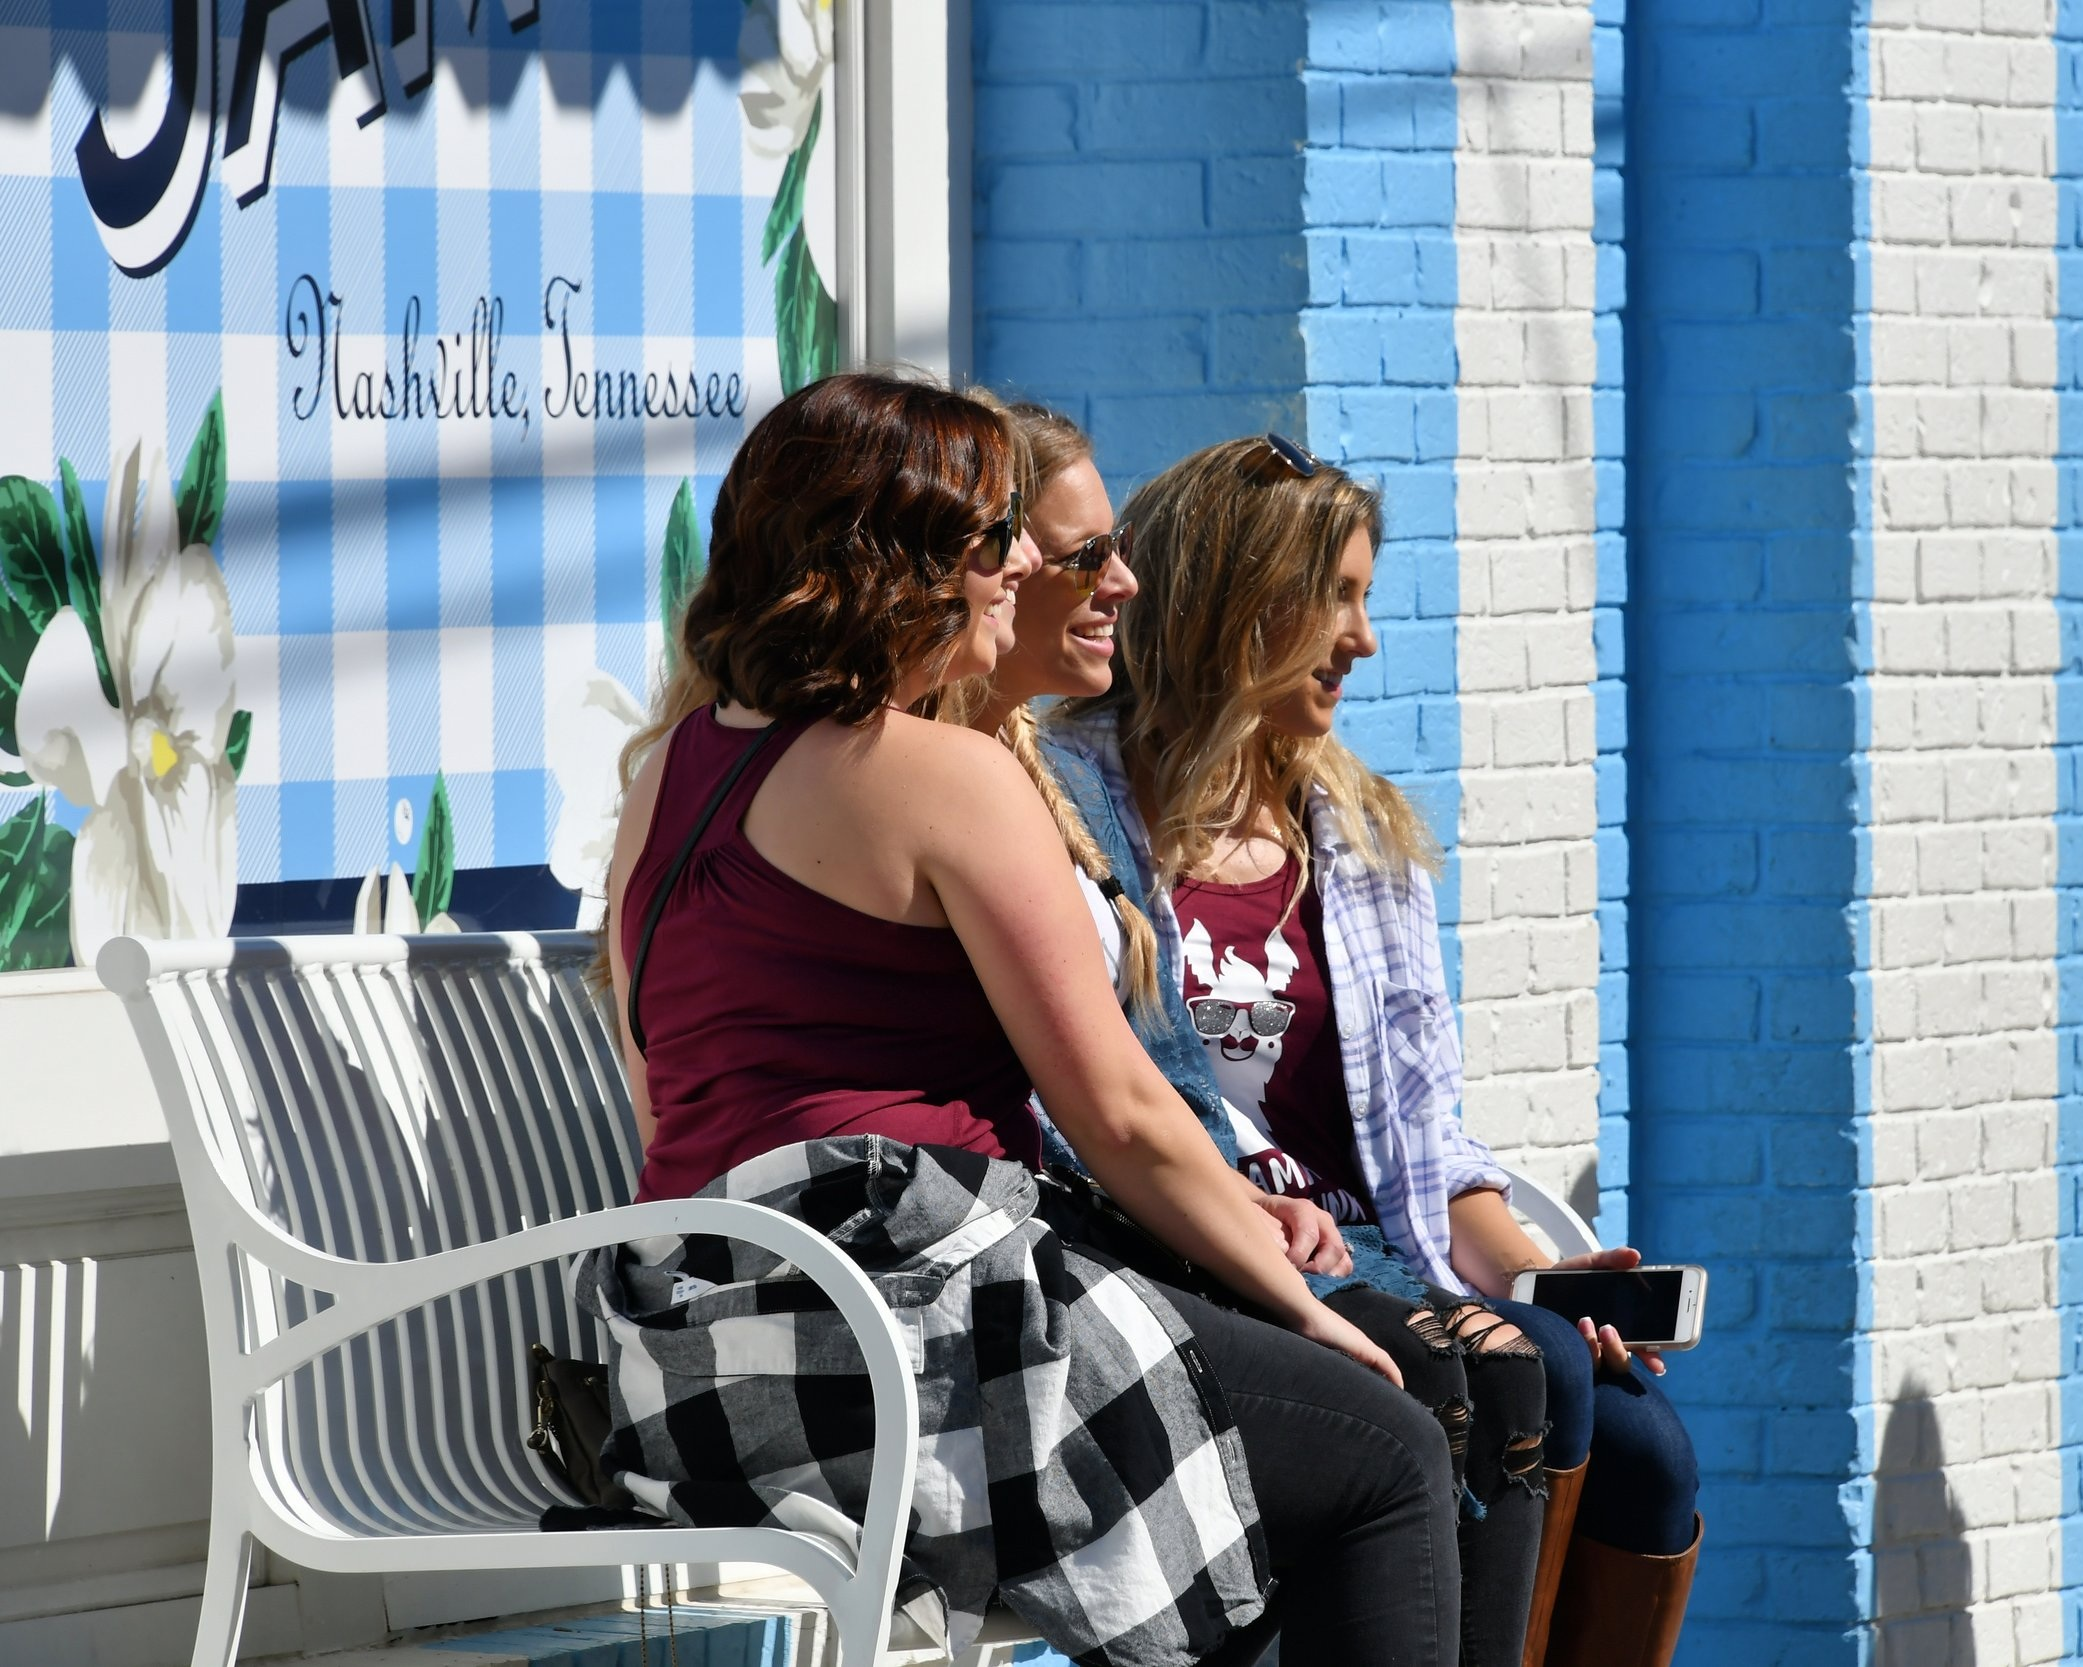 female-tourists-and-friends-pose-to-get-their-photos-taken-in-front-of-the-blue-and-white-striped_t20_Ywmgdm.jpg